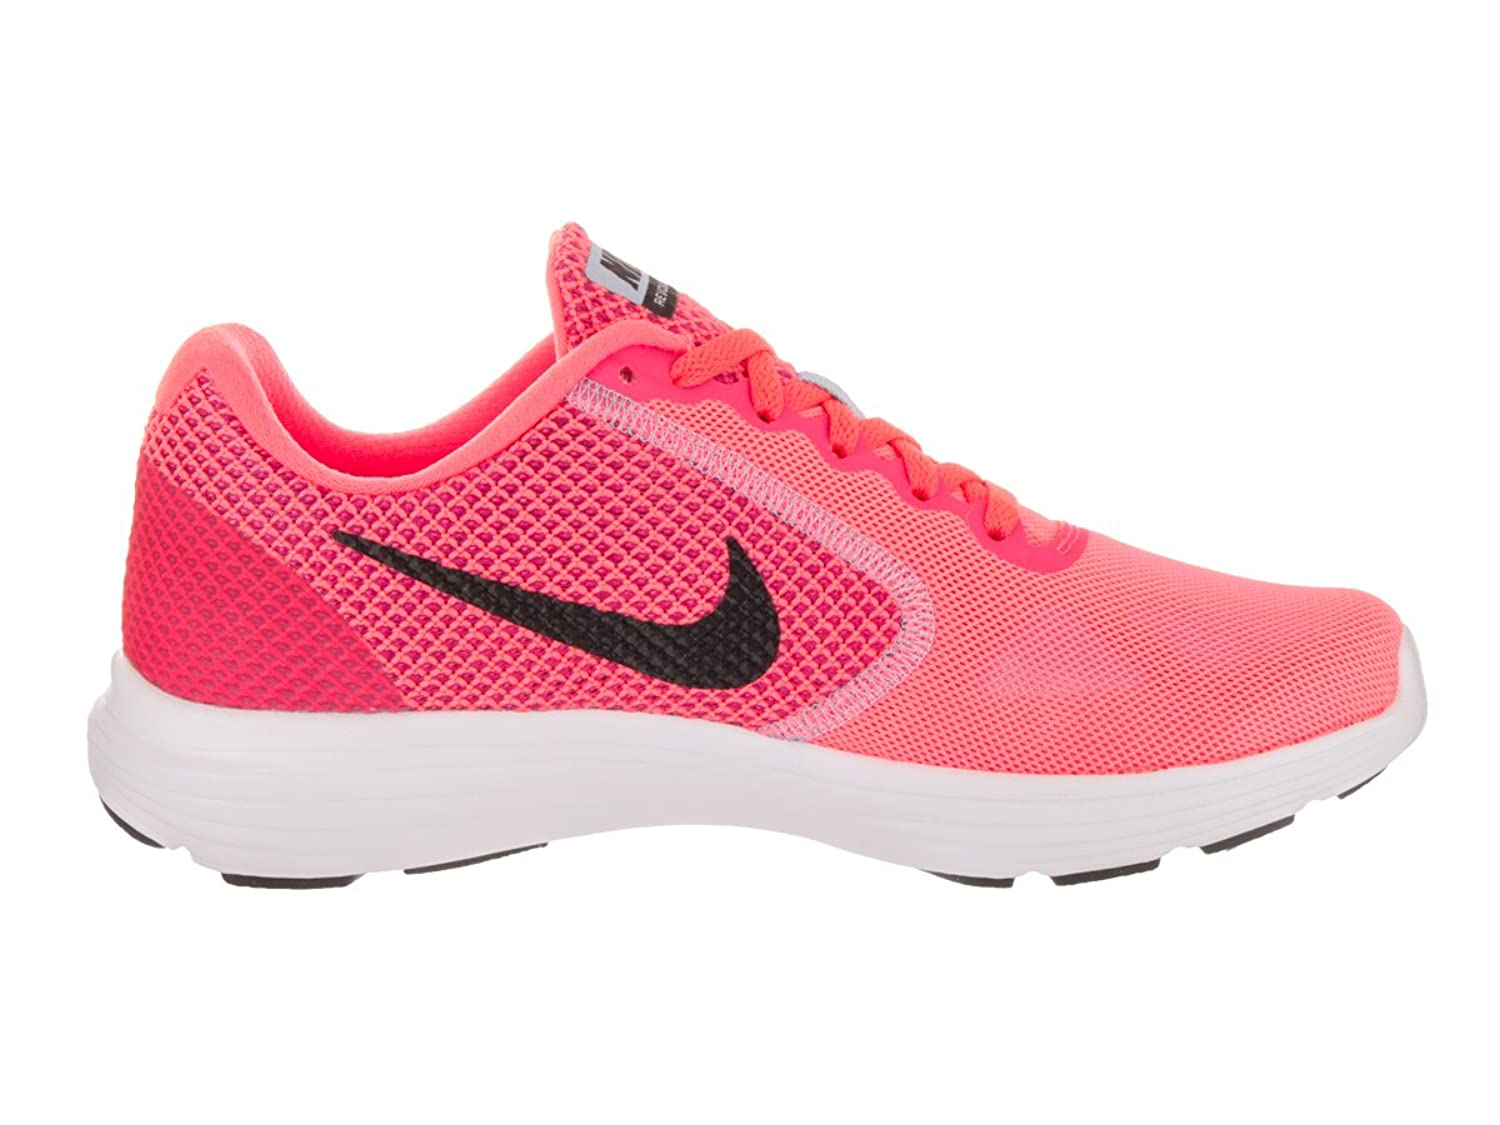 Nike Wmns Revolution 3, Zapatillas de Trail Running para Mujer, Rosa (Hot Punch/Black/Aluminum/White 602), 40 EU